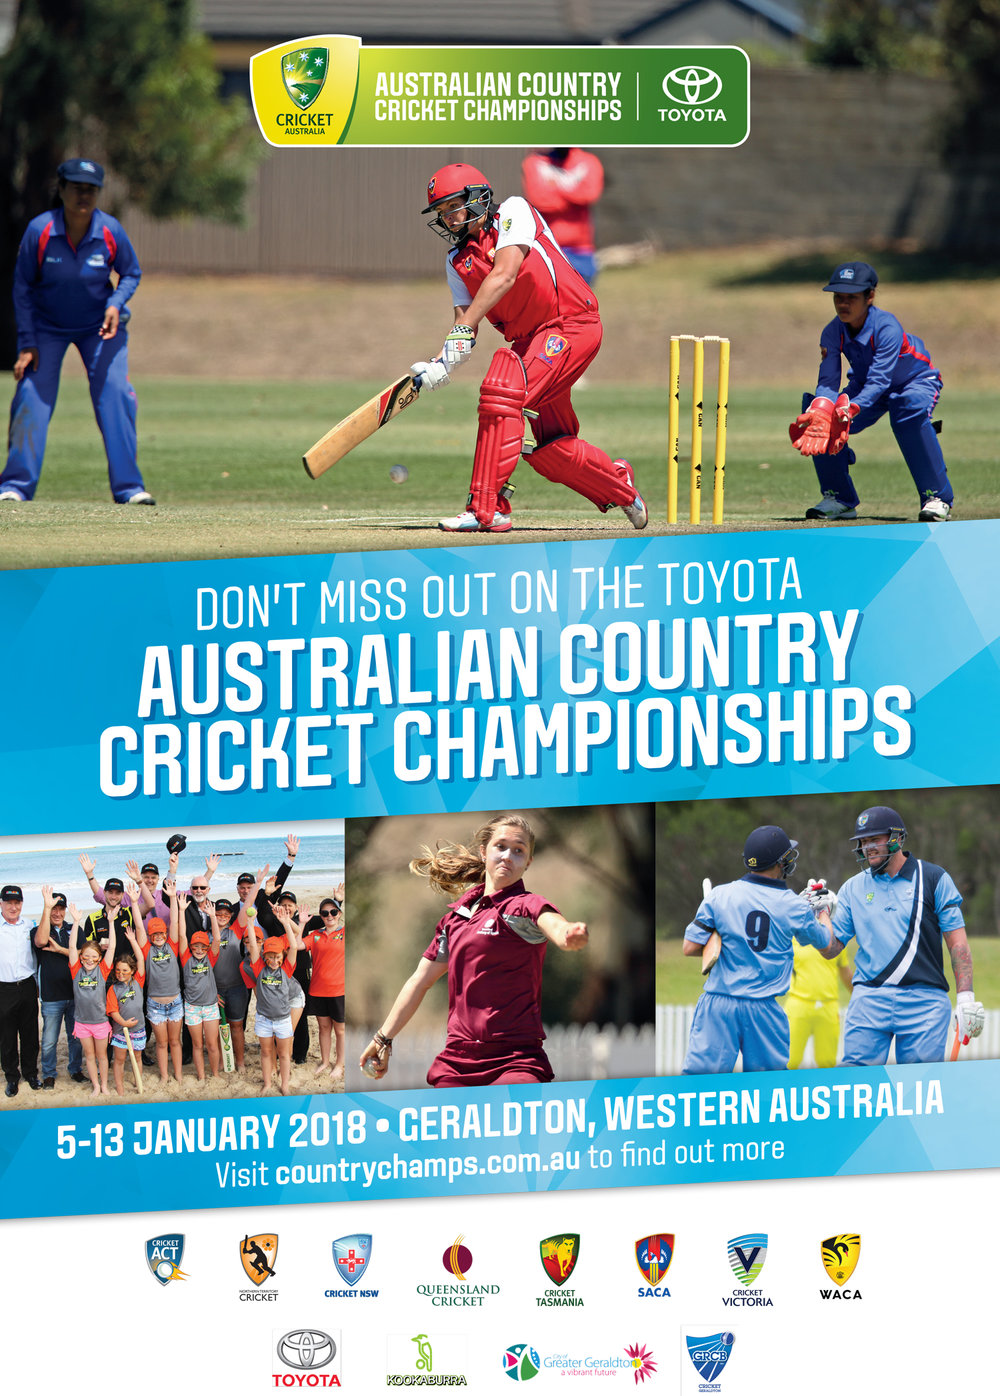 4264-Australia-Cricket-Country-Champs-Poster-2018_v02.jpg